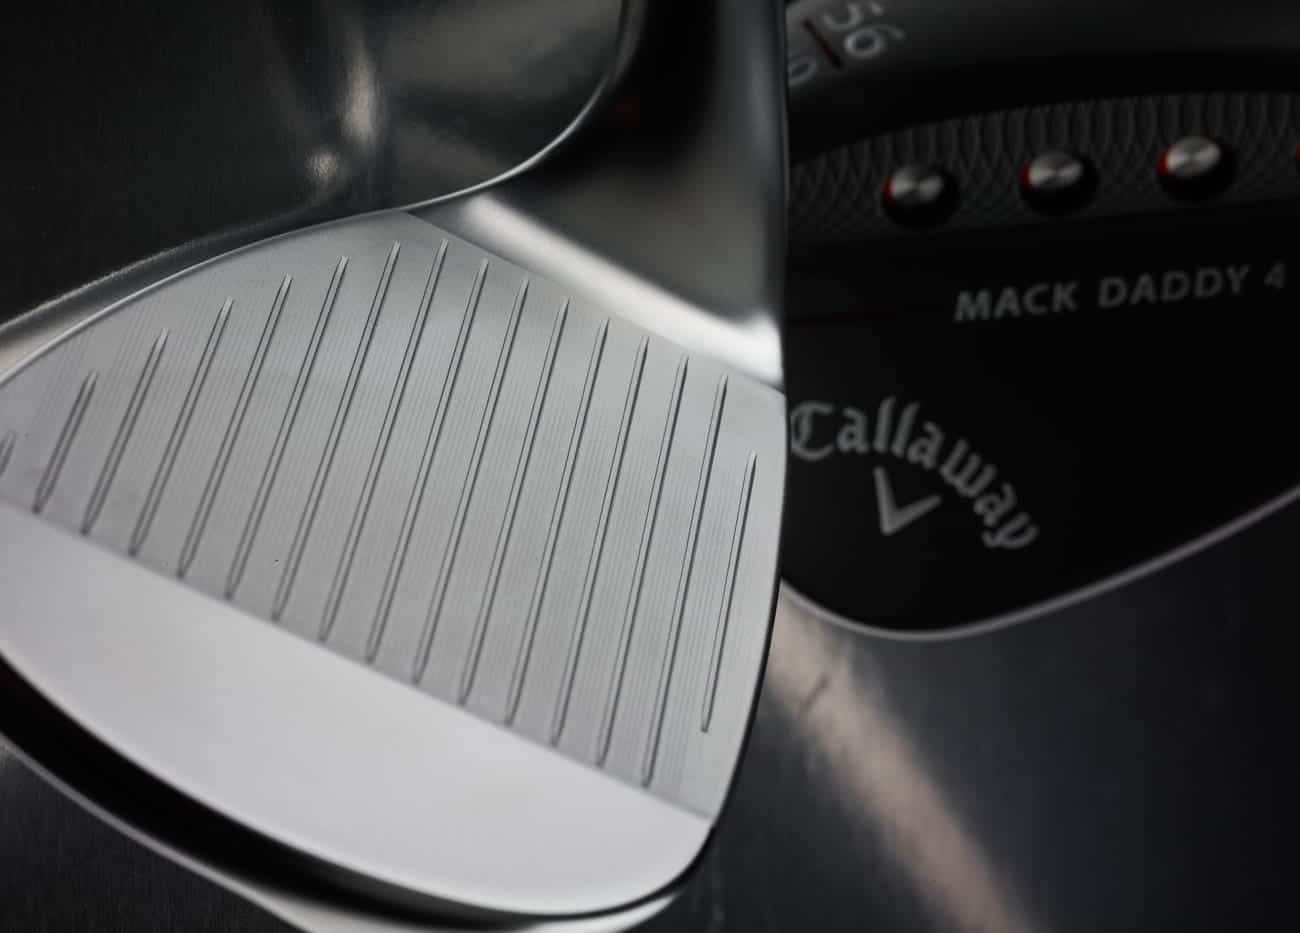 Callaway Mack Daddy 4 close up shot of the face of the club to document the new groove-in-groove technology for 2018